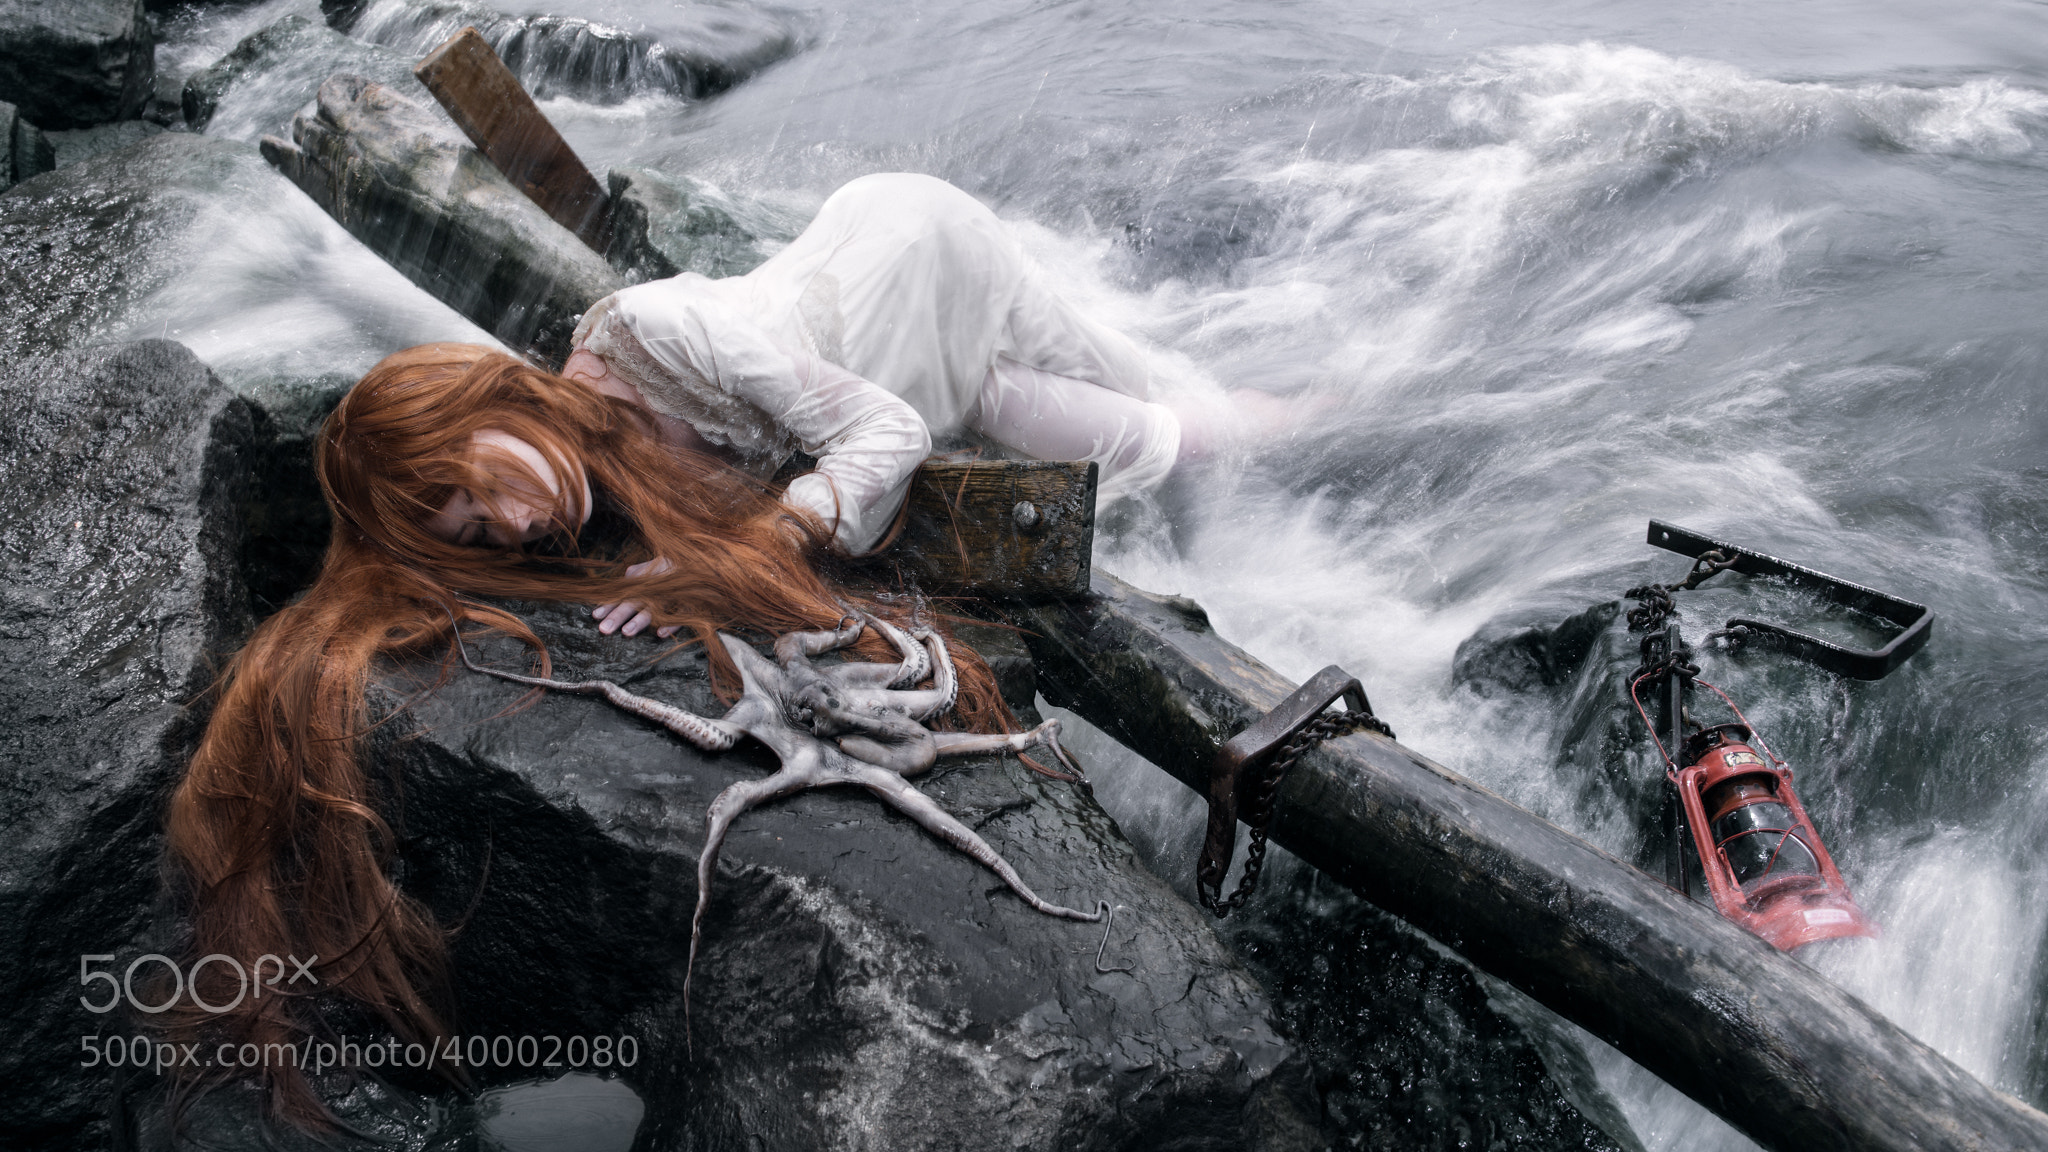 Photograph Shipwrecked by Benjamin Von Wong on 500px